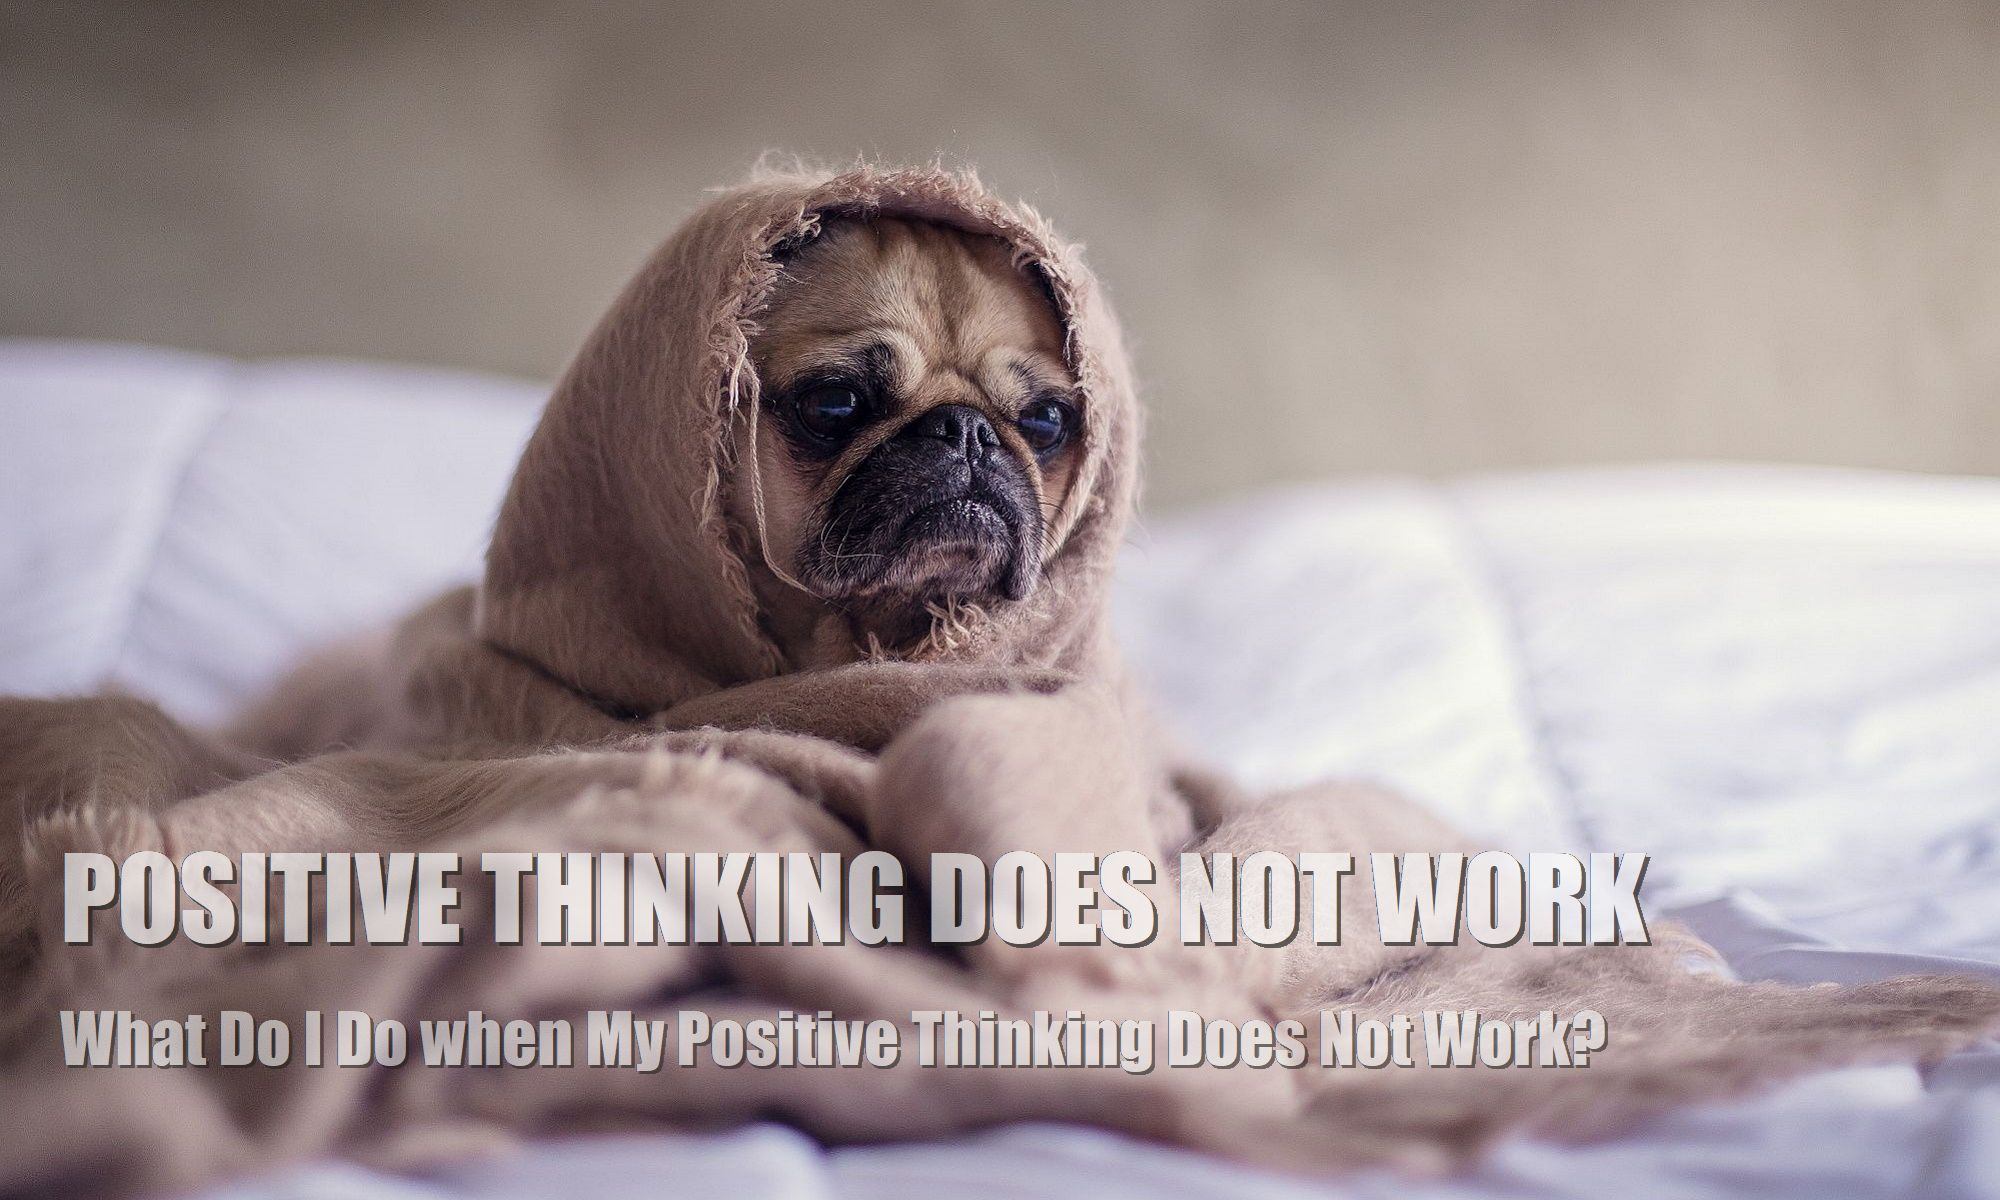 What-do-I-do-when-my-Positive-thoughts-thinking-doesnt-work-what-is-solution-problem-2000